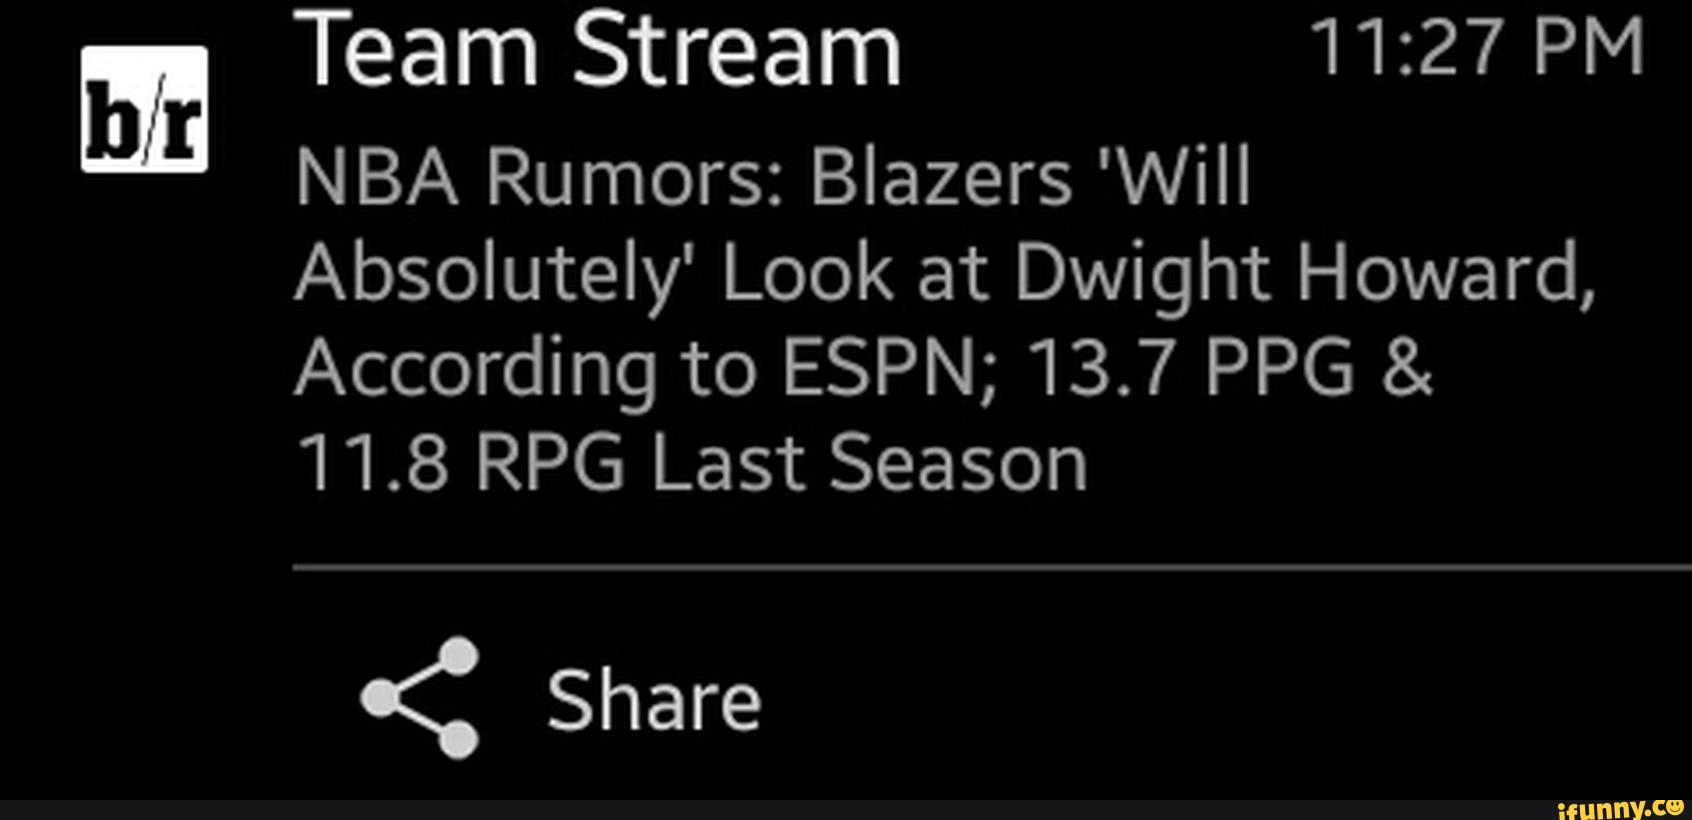 ª NBA Rumors: Blazers 'Will Absolutely' Look at Dwight